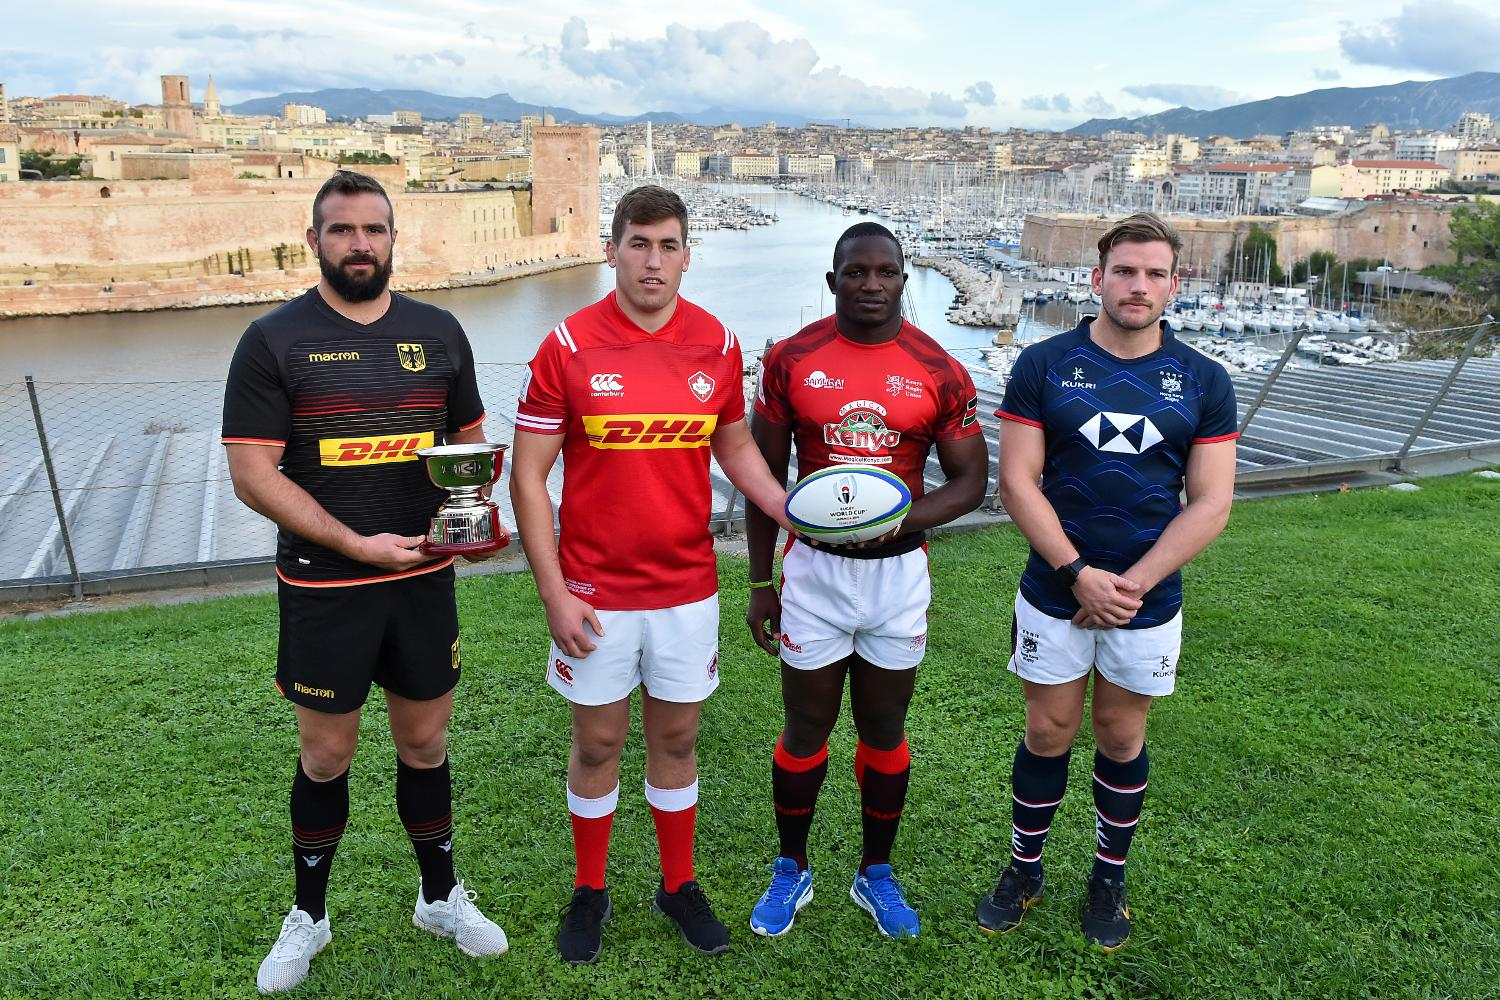 RWC 2019 Repechage captains photo